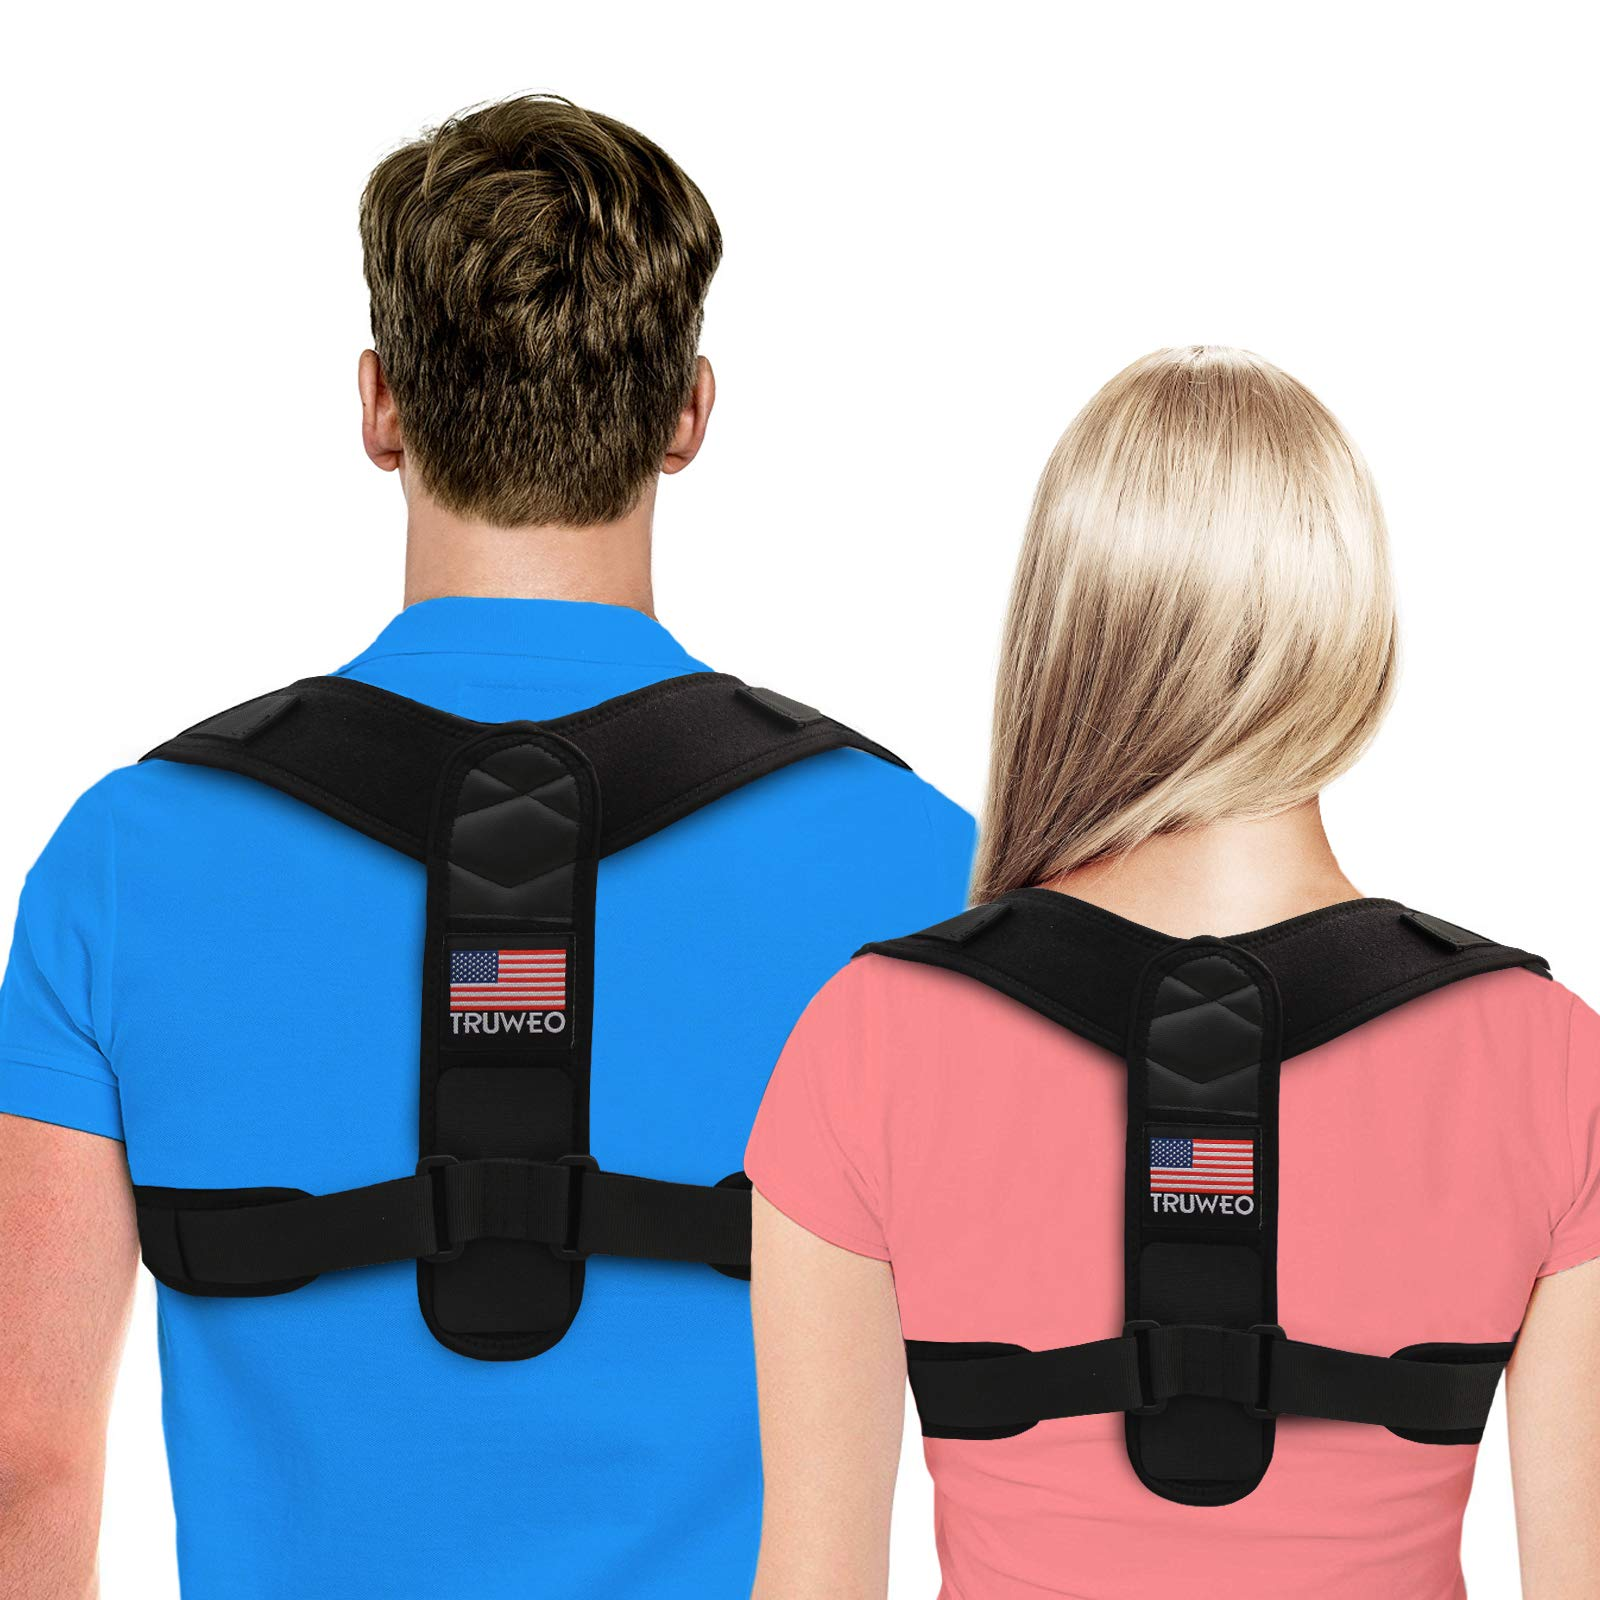 ffa8aa49595 Posture Corrector For Men And Women - USA Designed Adjustable Upper Back  Brace For Clavicle Support